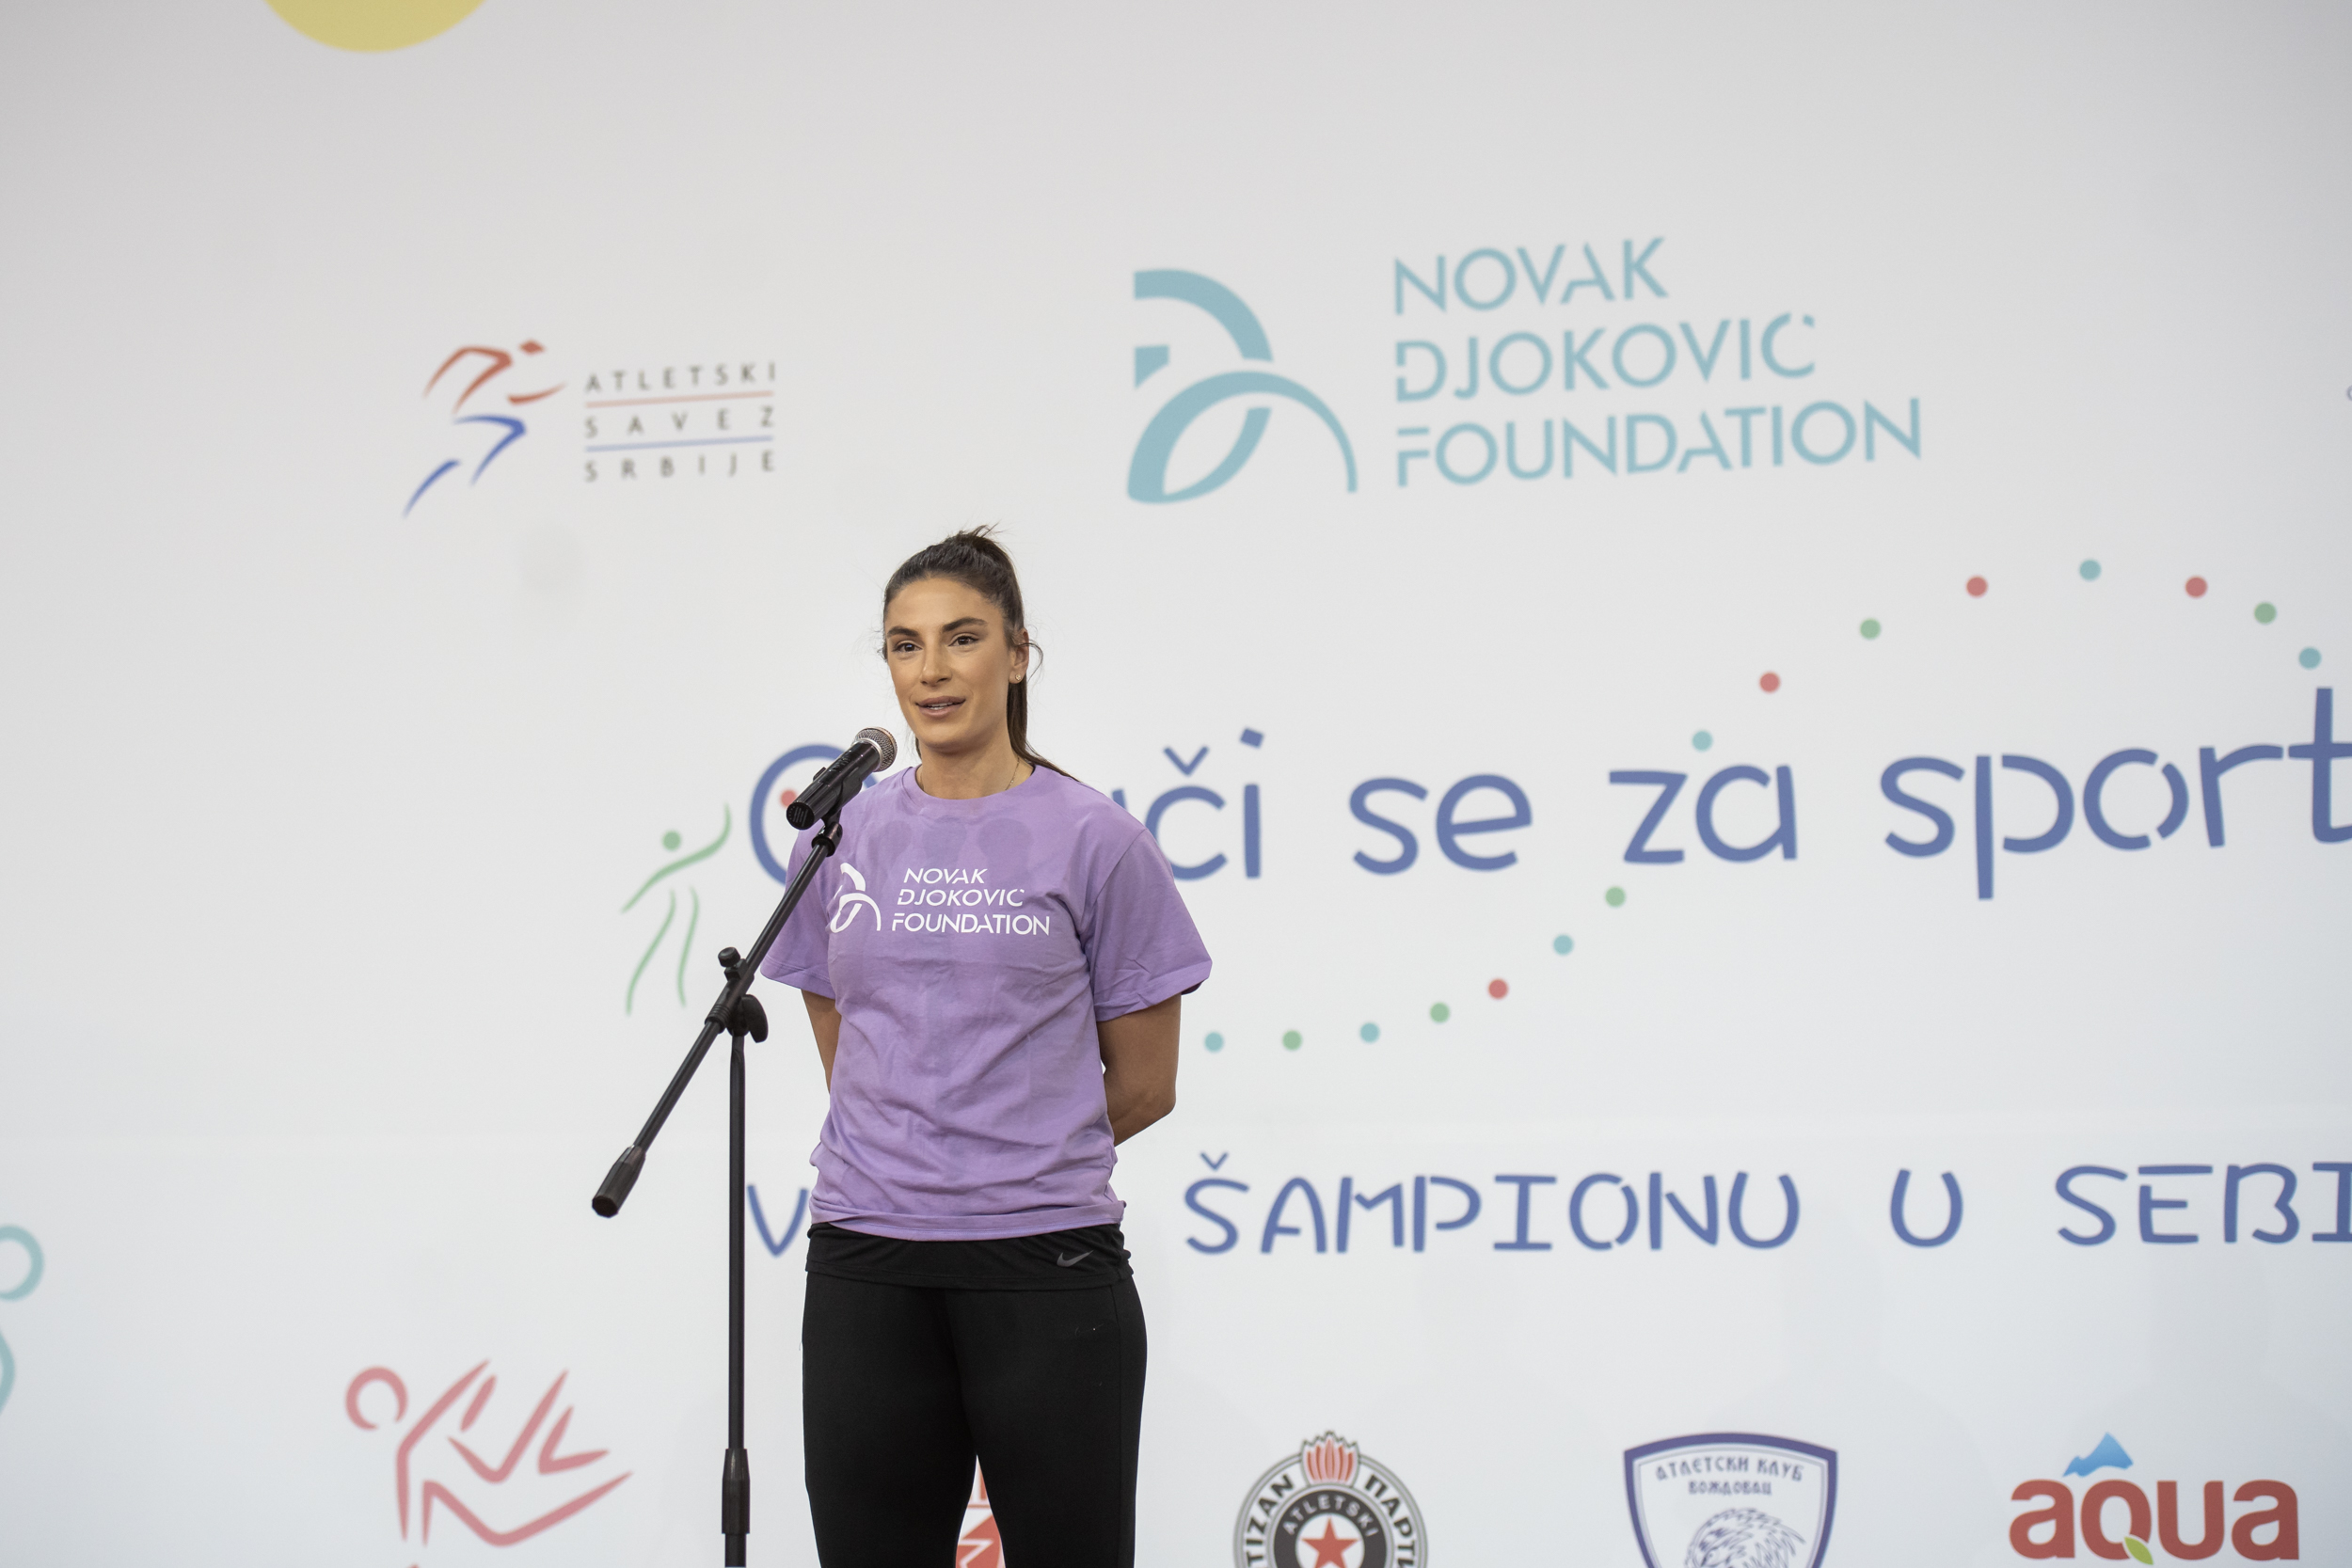 The best Serbian athlete and the World long jump champion opened up the event held in the Athletic arena.